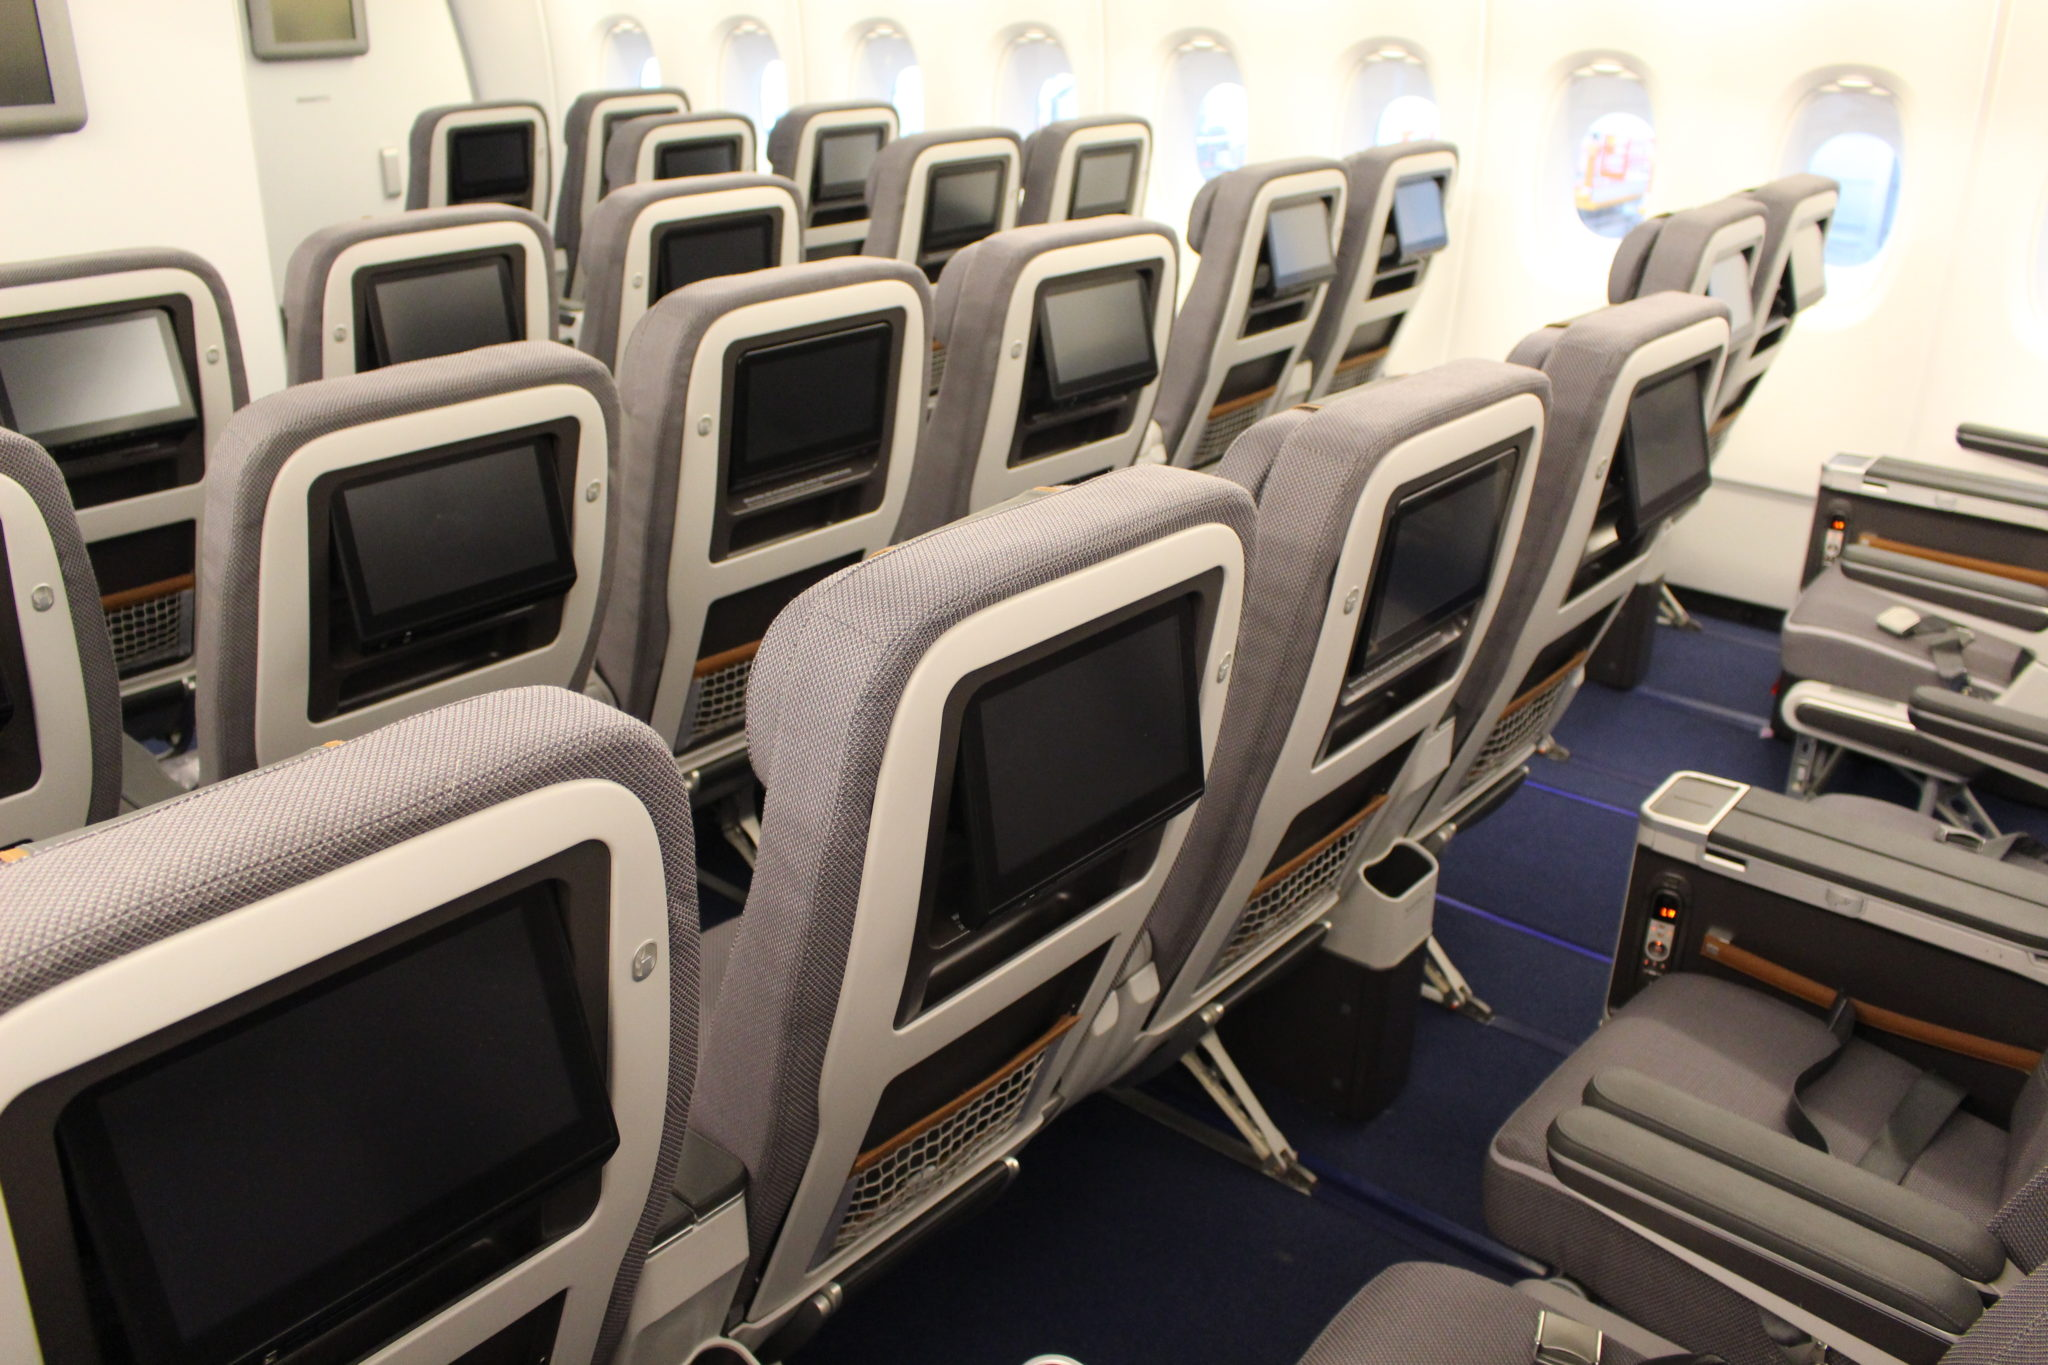 Lufthansa's A380 premium economy sits at the front of the lower deck, a quiet and exclusive spot where other airlines have their first class cabin. Image: John Walton